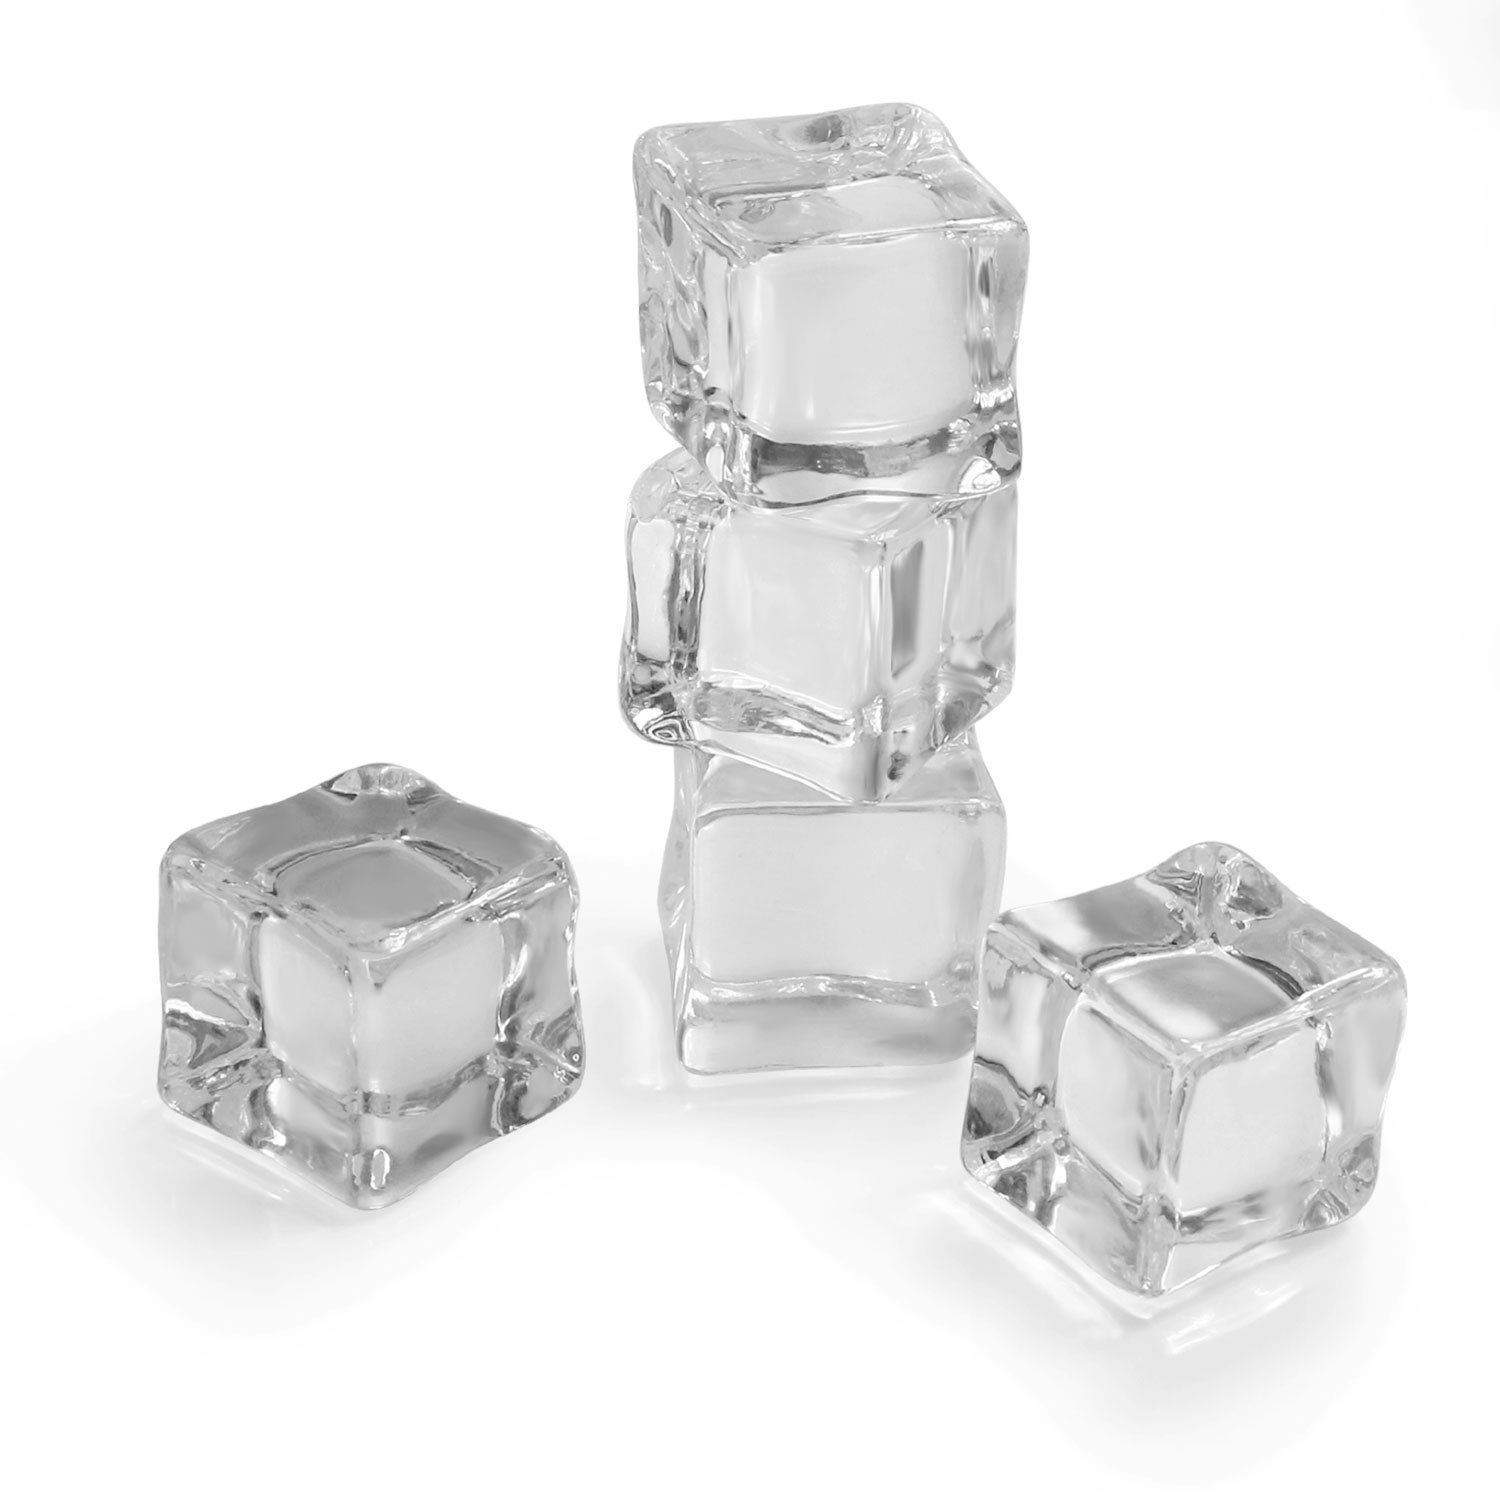 Sorive 24 Counts/Pack Fake Artificial Acrylic Ice Cubes Crystal Clear 1 Inch SRI01807 (1 Inch)